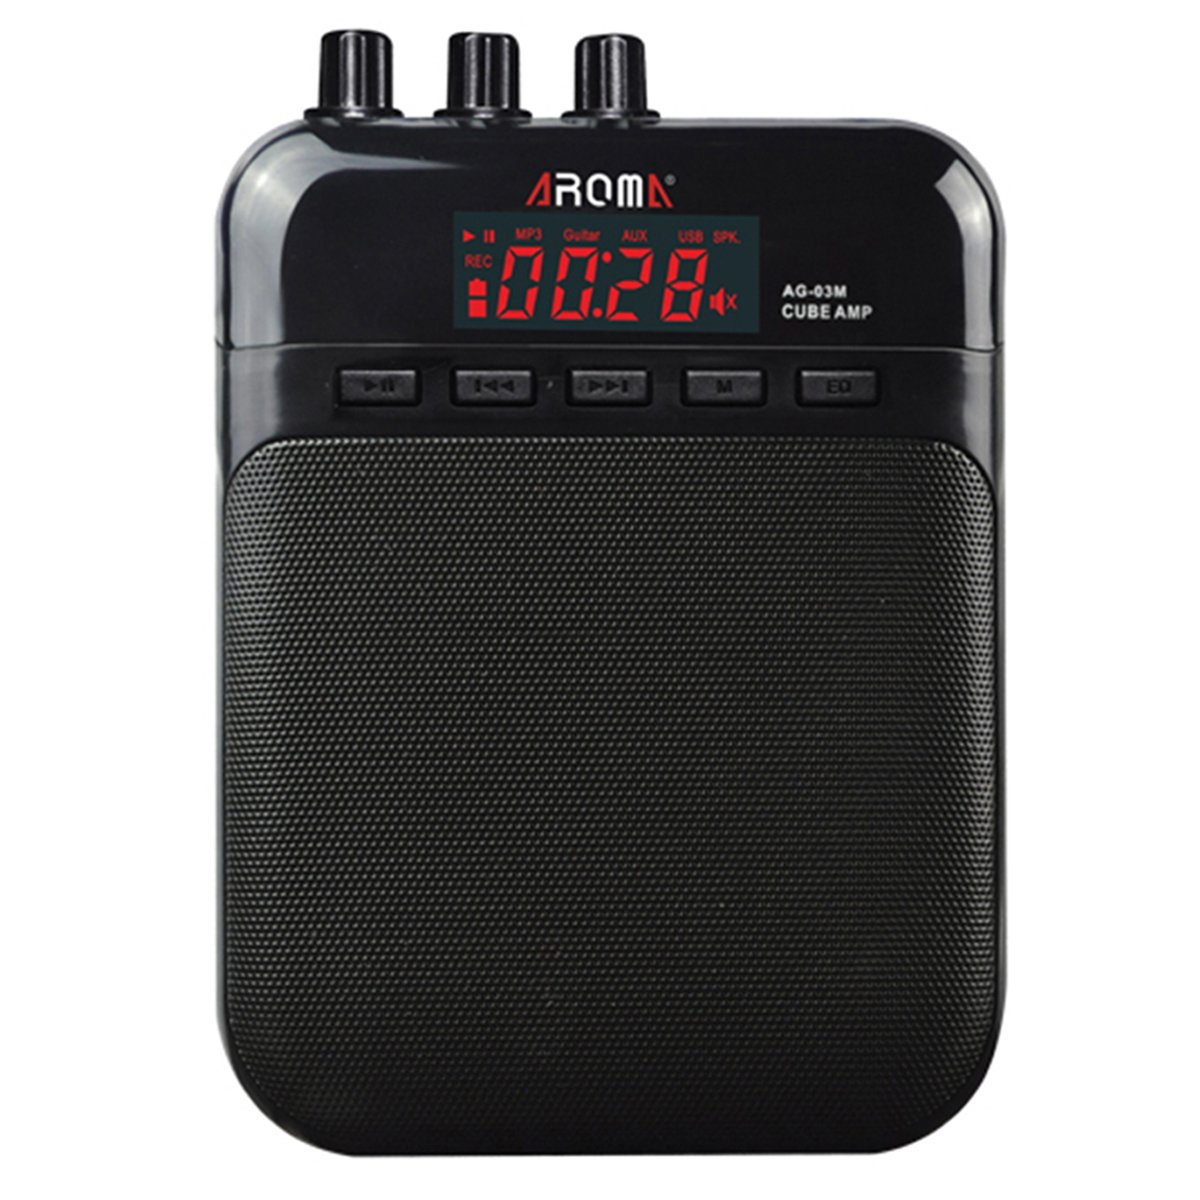 AROMA Mini Portable 5W Guitar Amp/Amplifier Recorder/Speaker with USB Cable to Recharge AG-03M